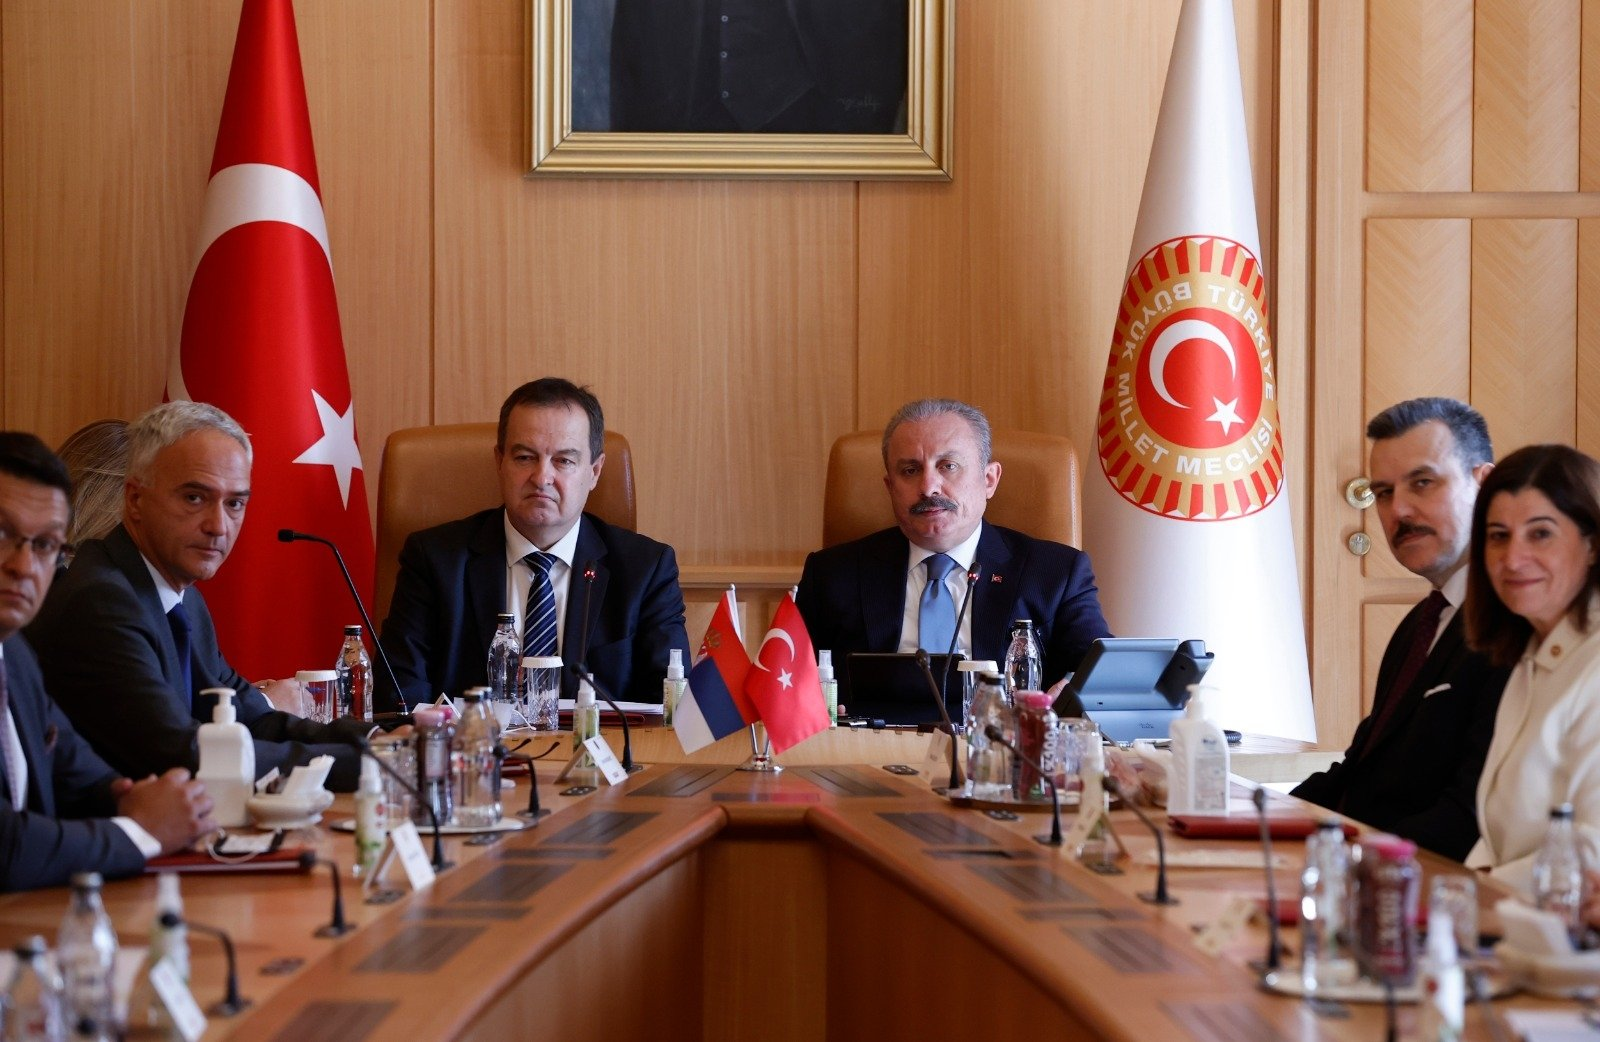 Parliament Speaker Mustafa Şentop (R) and Serbian Counterpart IvicaDacic hold a meeting with their delegations, Monday, Sept. 13, 2021. (DHA Photo)